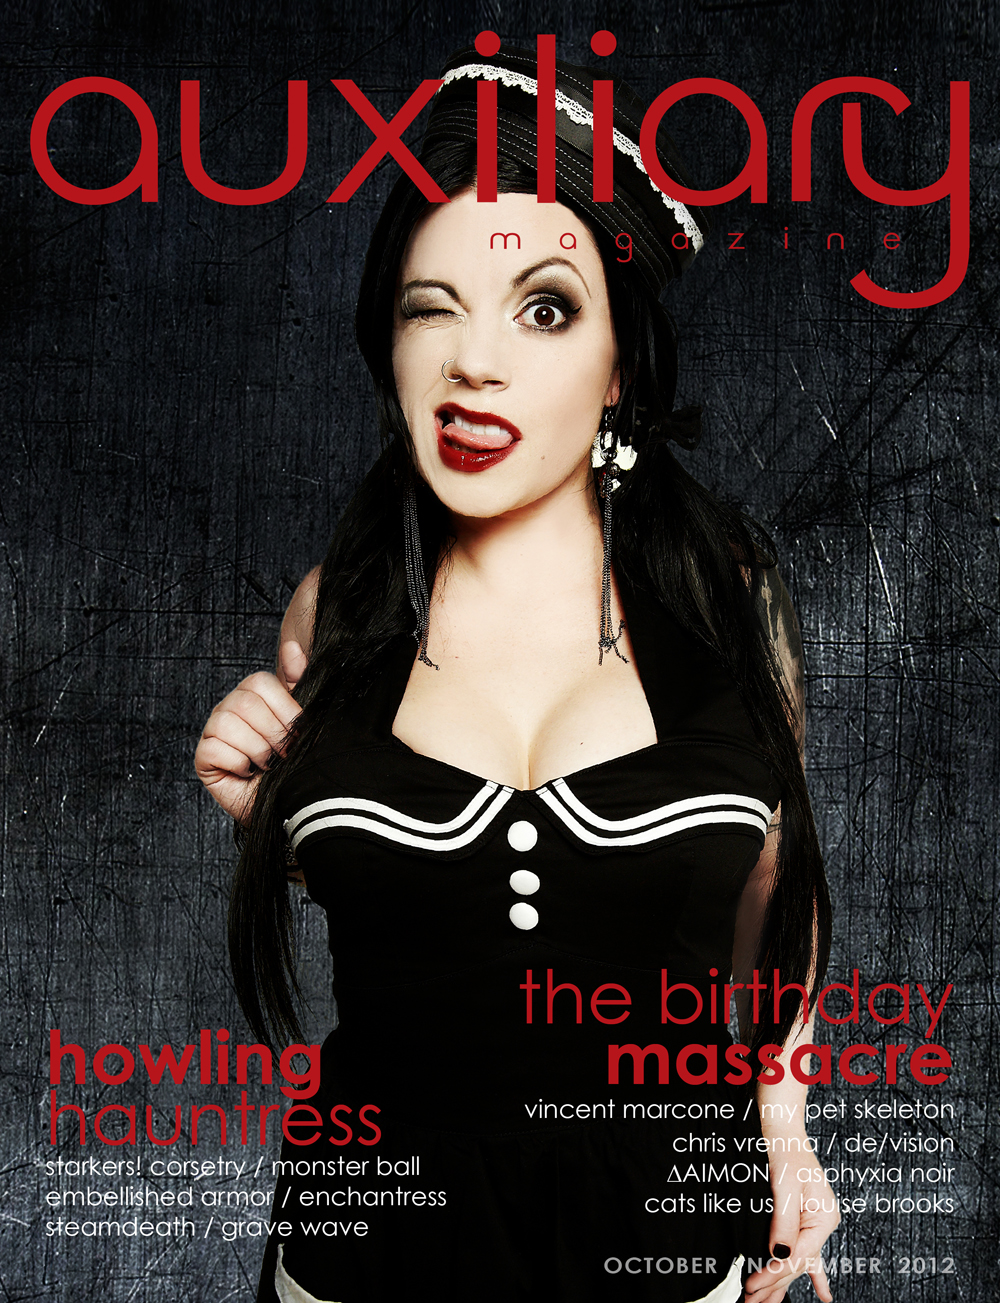 Auxiliary Magazine October/November 2012 cover